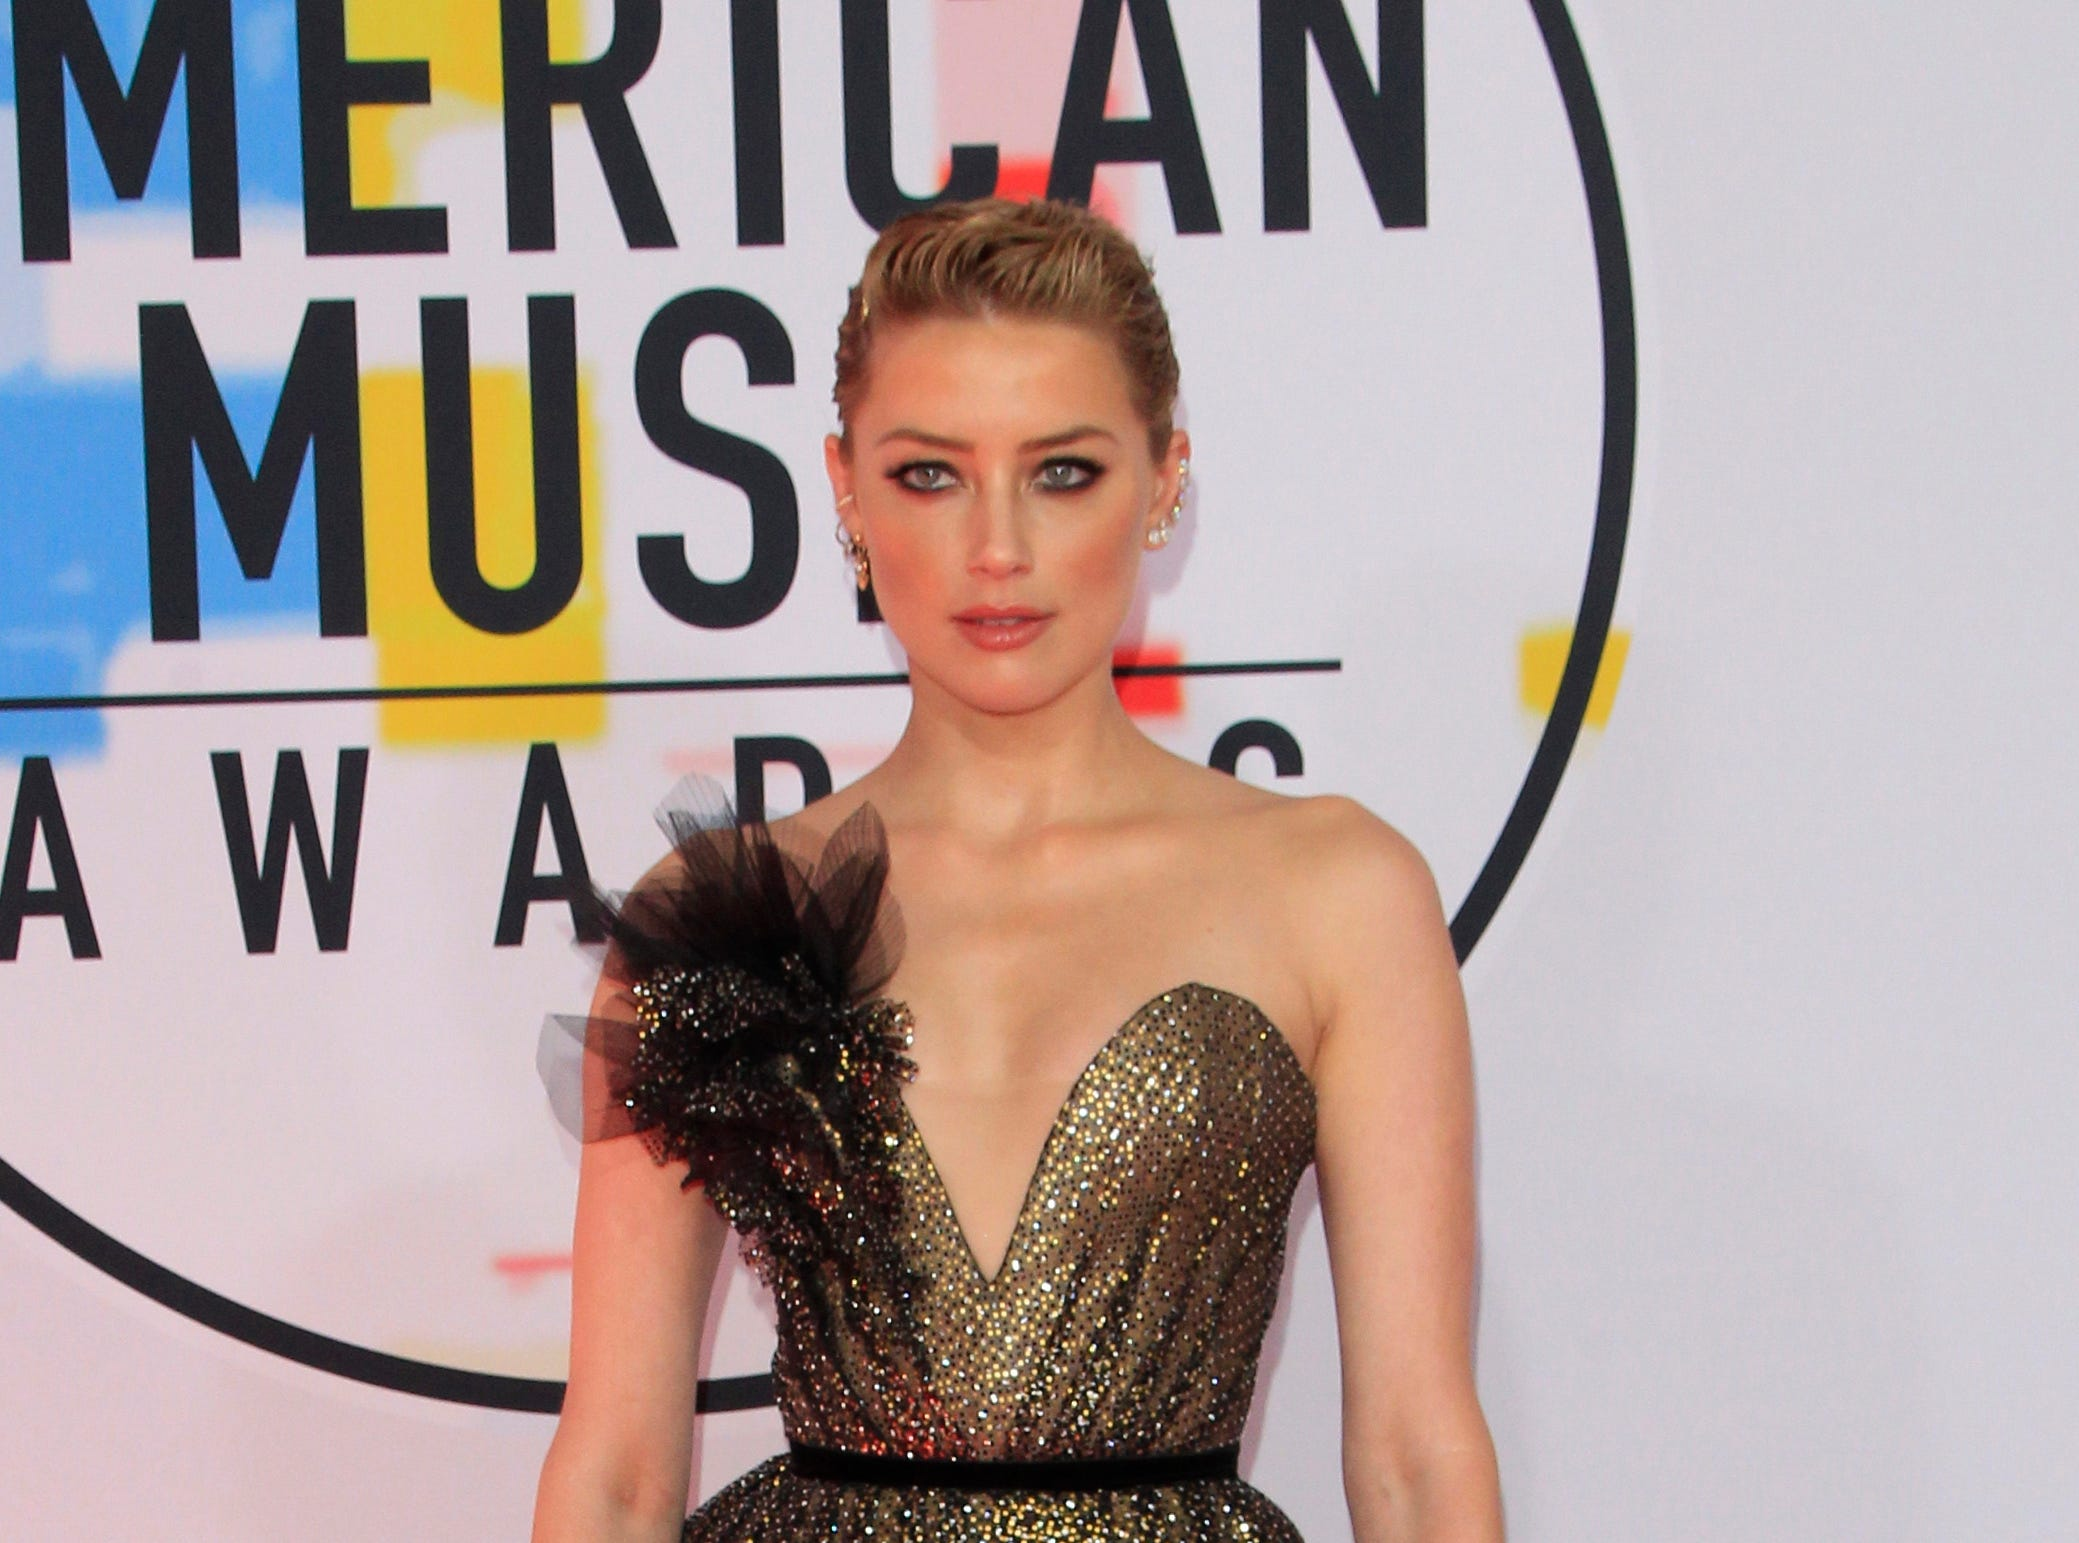 epa07081957 US actress Amber Heard arrives for the 2018 American Music Awards at the Microsoft Theater in Los Angeles, California, USA, 09 October 2018.  EPA-EFE/NINA PROMMER ORG XMIT: MAN168